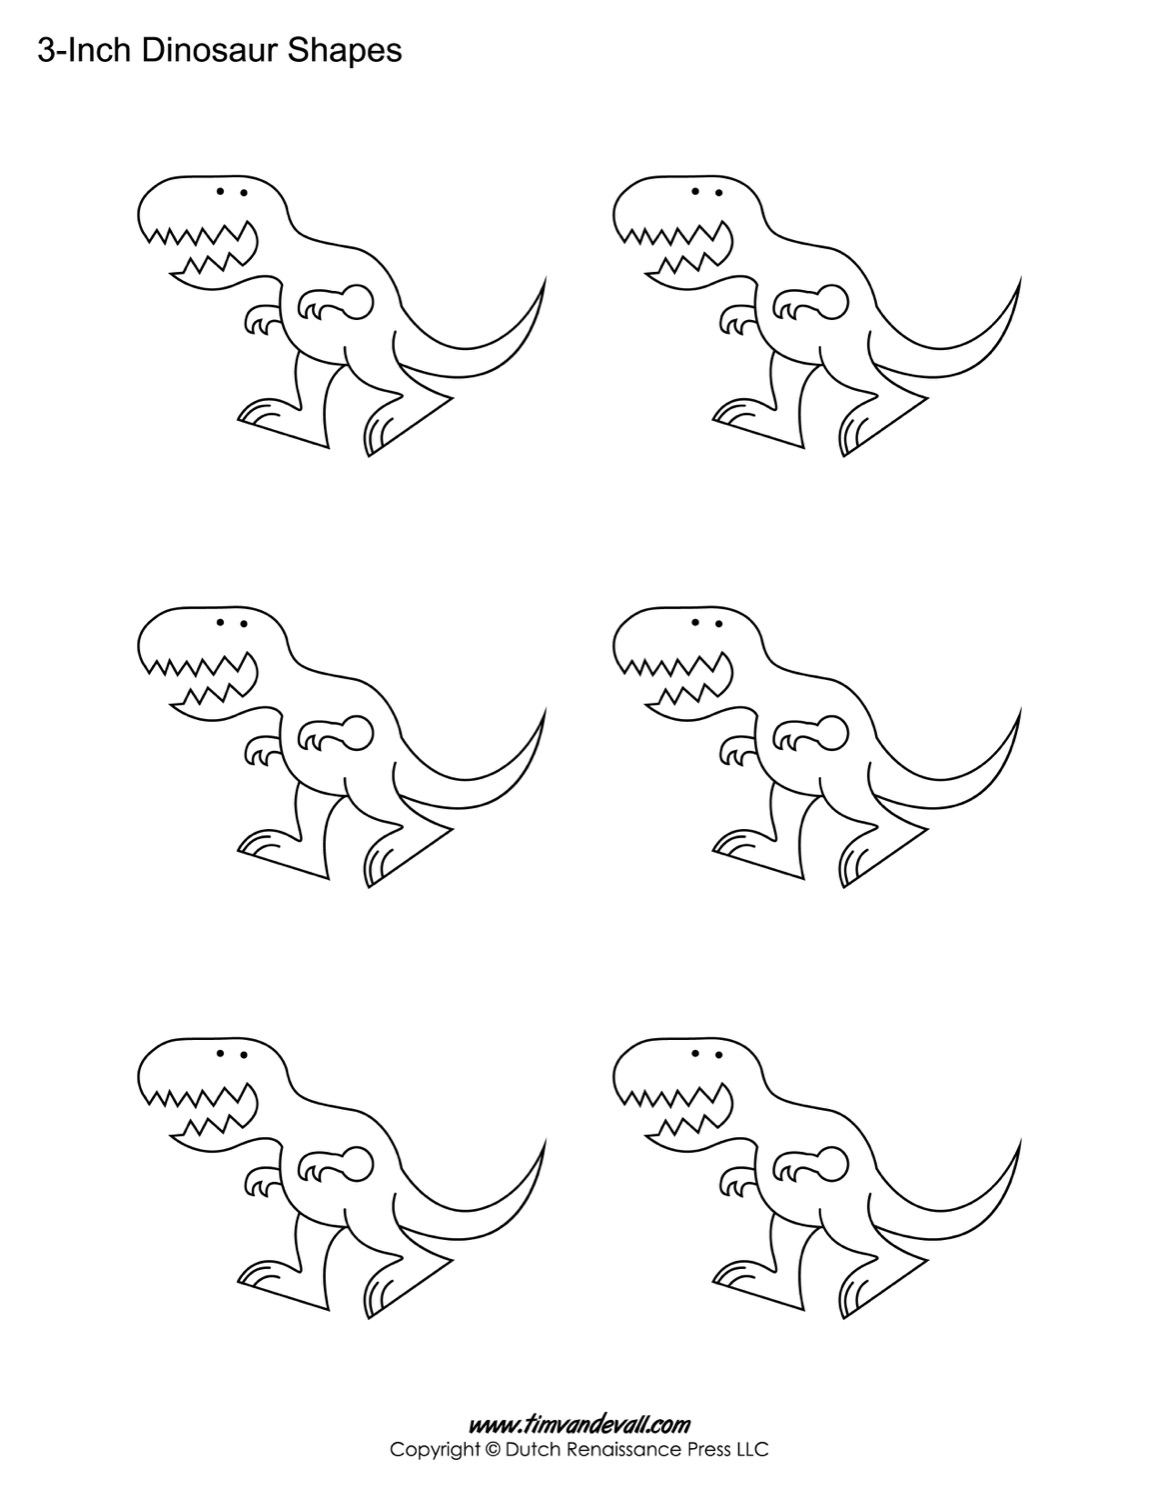 pictures of dinosaurs to print dinosaurs coloring pages printable minister coloring pictures print dinosaurs to of